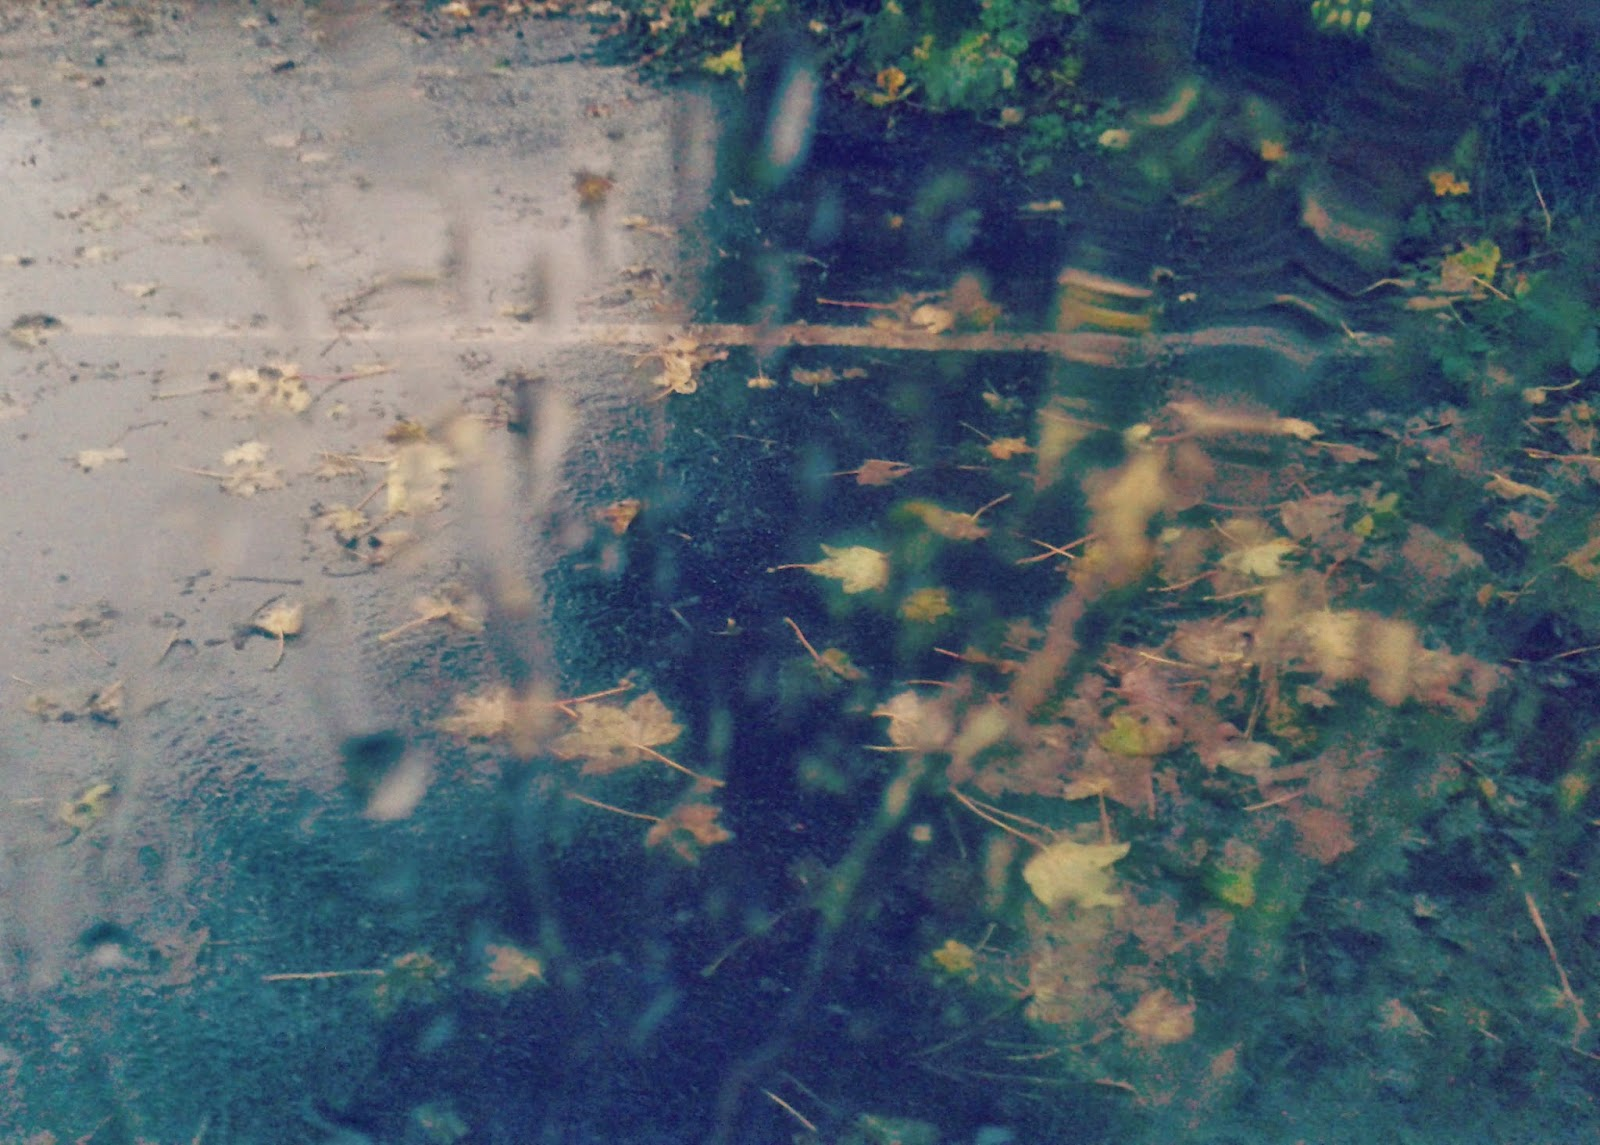 Project 365 #46 Day 316 - Autumn Rain // 76sunflowers